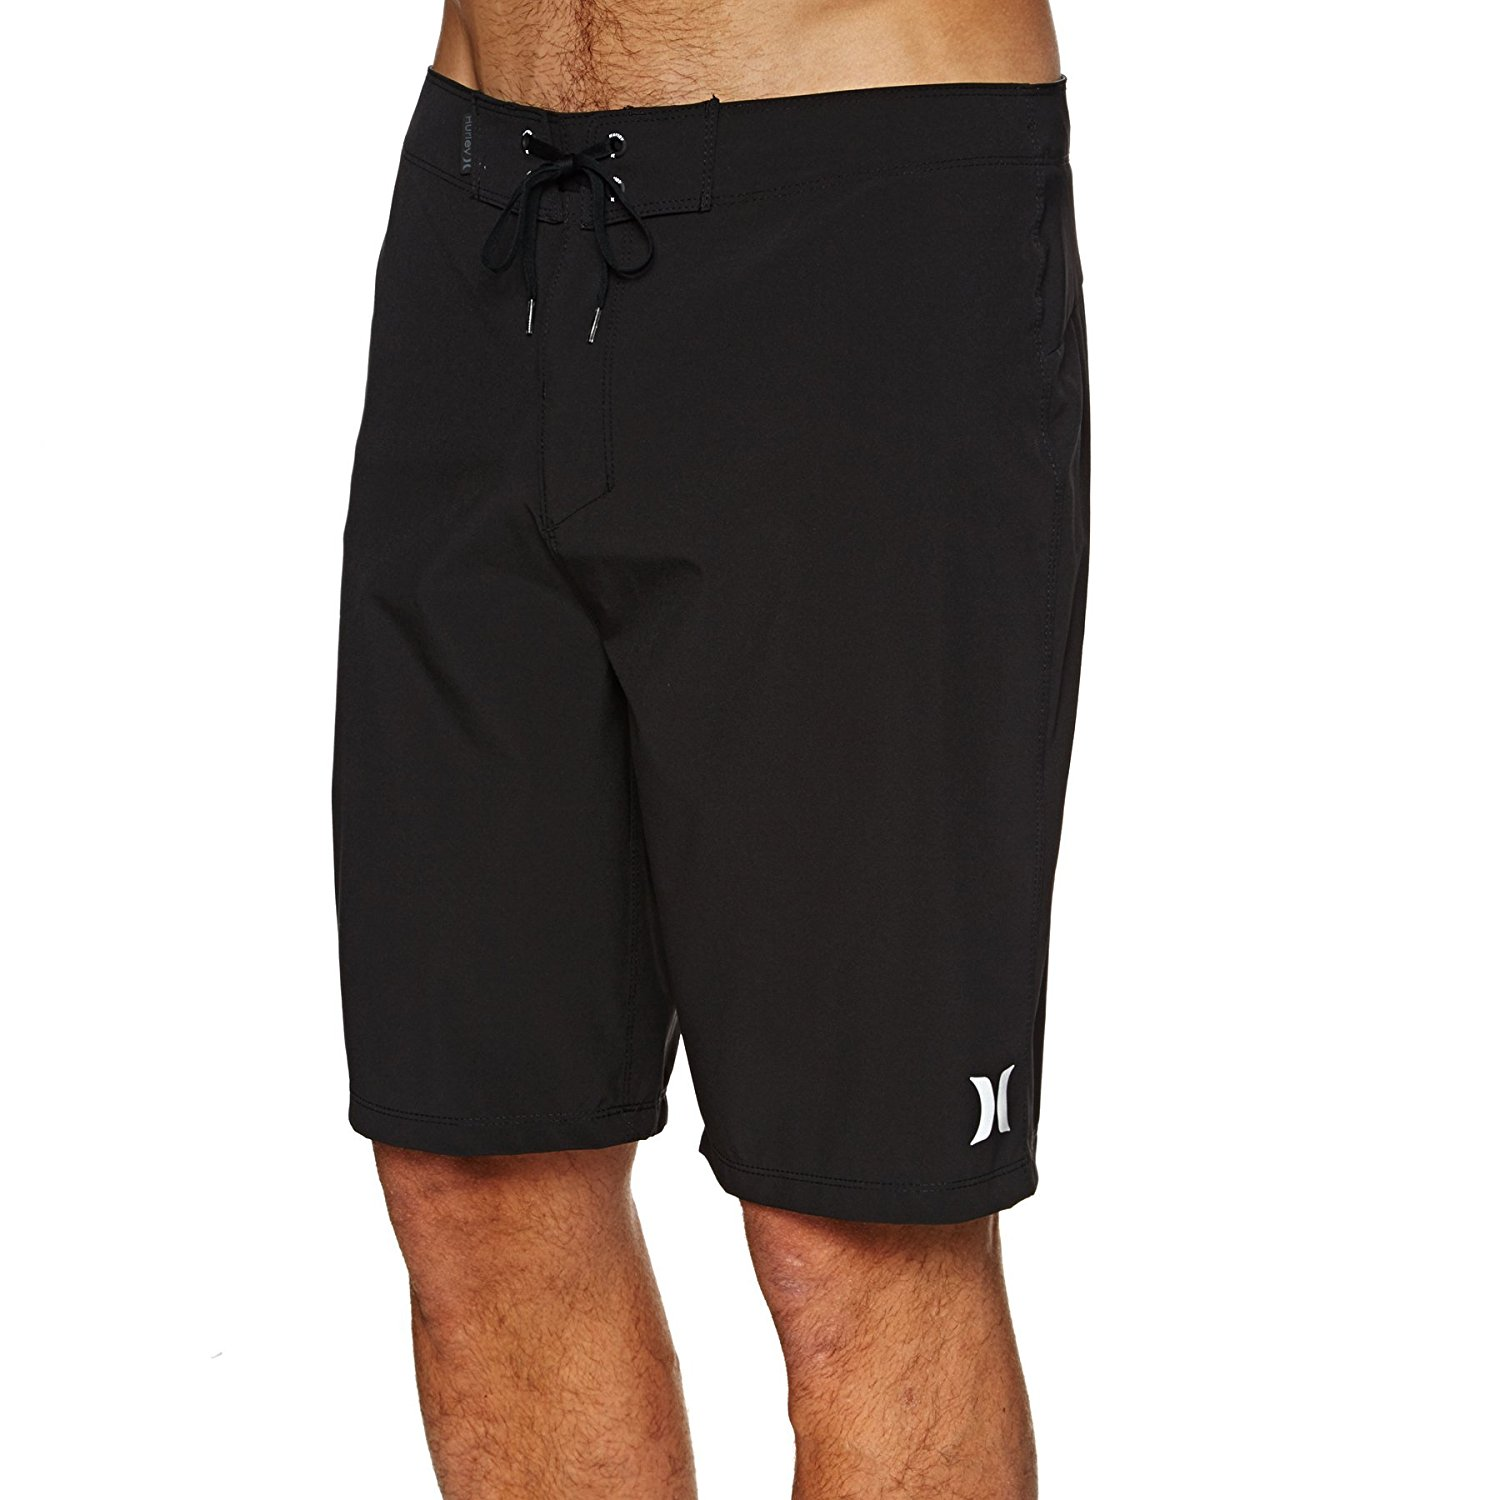 9c34284b3f Cheap Hurley Boardshorts, find Hurley Boardshorts deals on line at ...